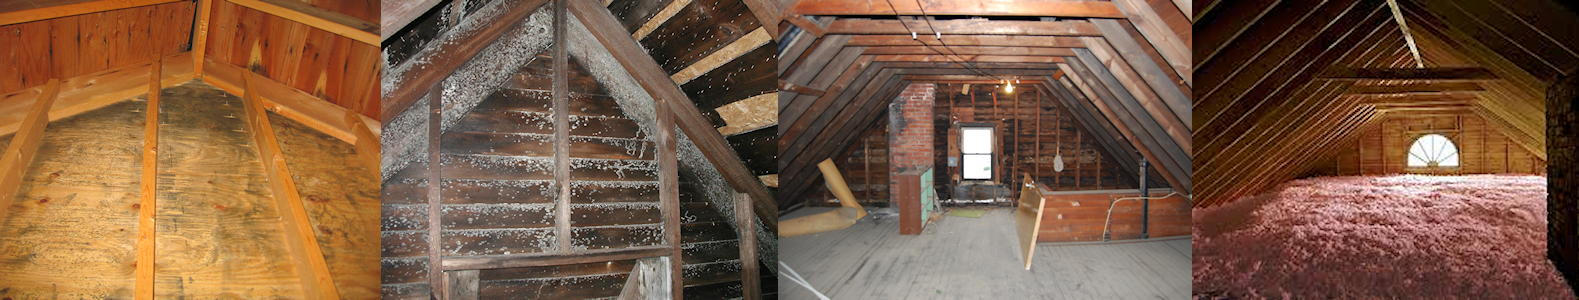 Attic Inspections can tell a lot